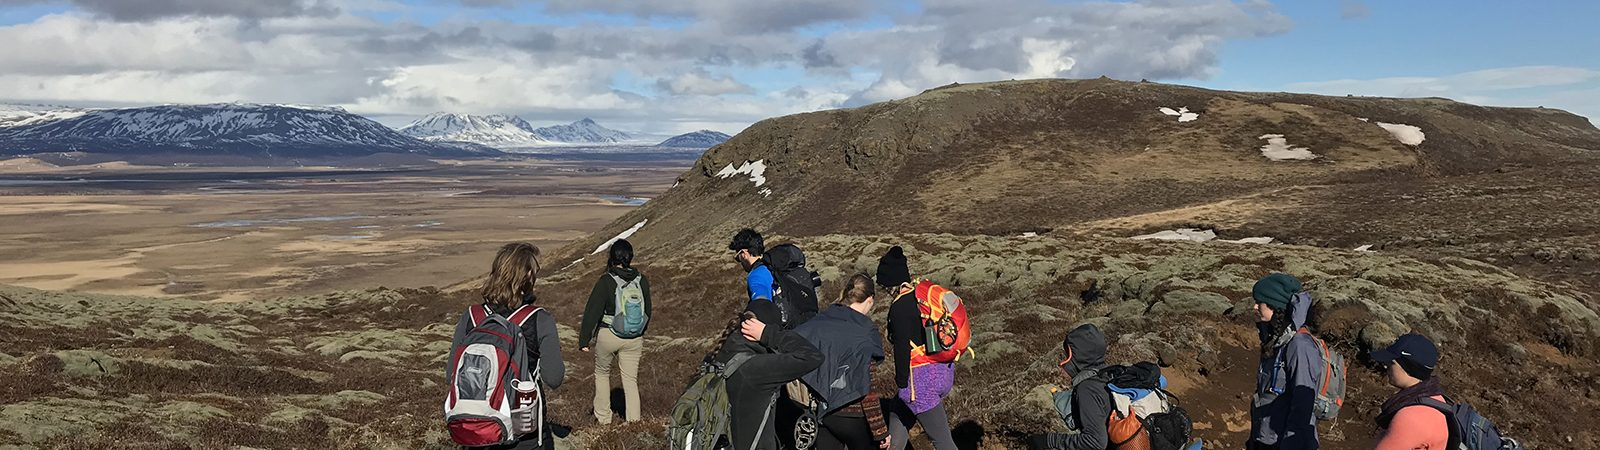 Northland College students studied abroad in Iceland. In this photo they are hiking.